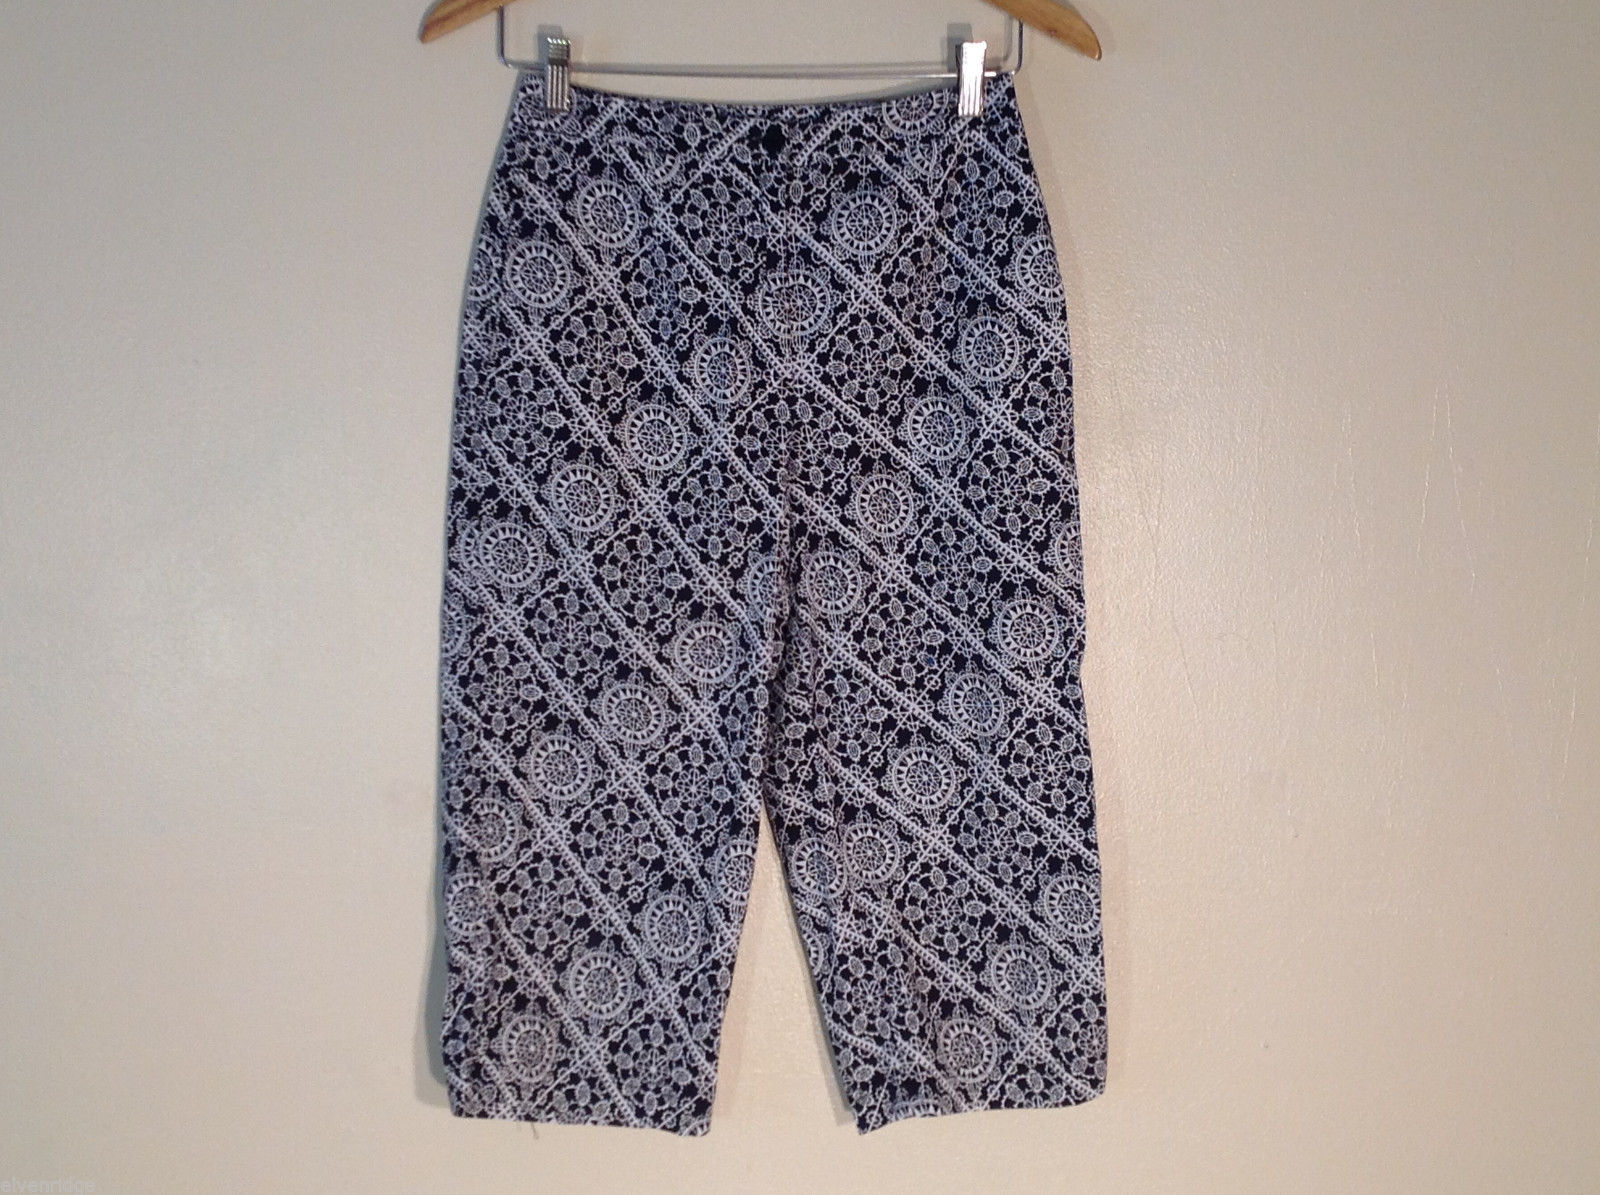 Womens Talbots black and white print capri pants size 4 petite